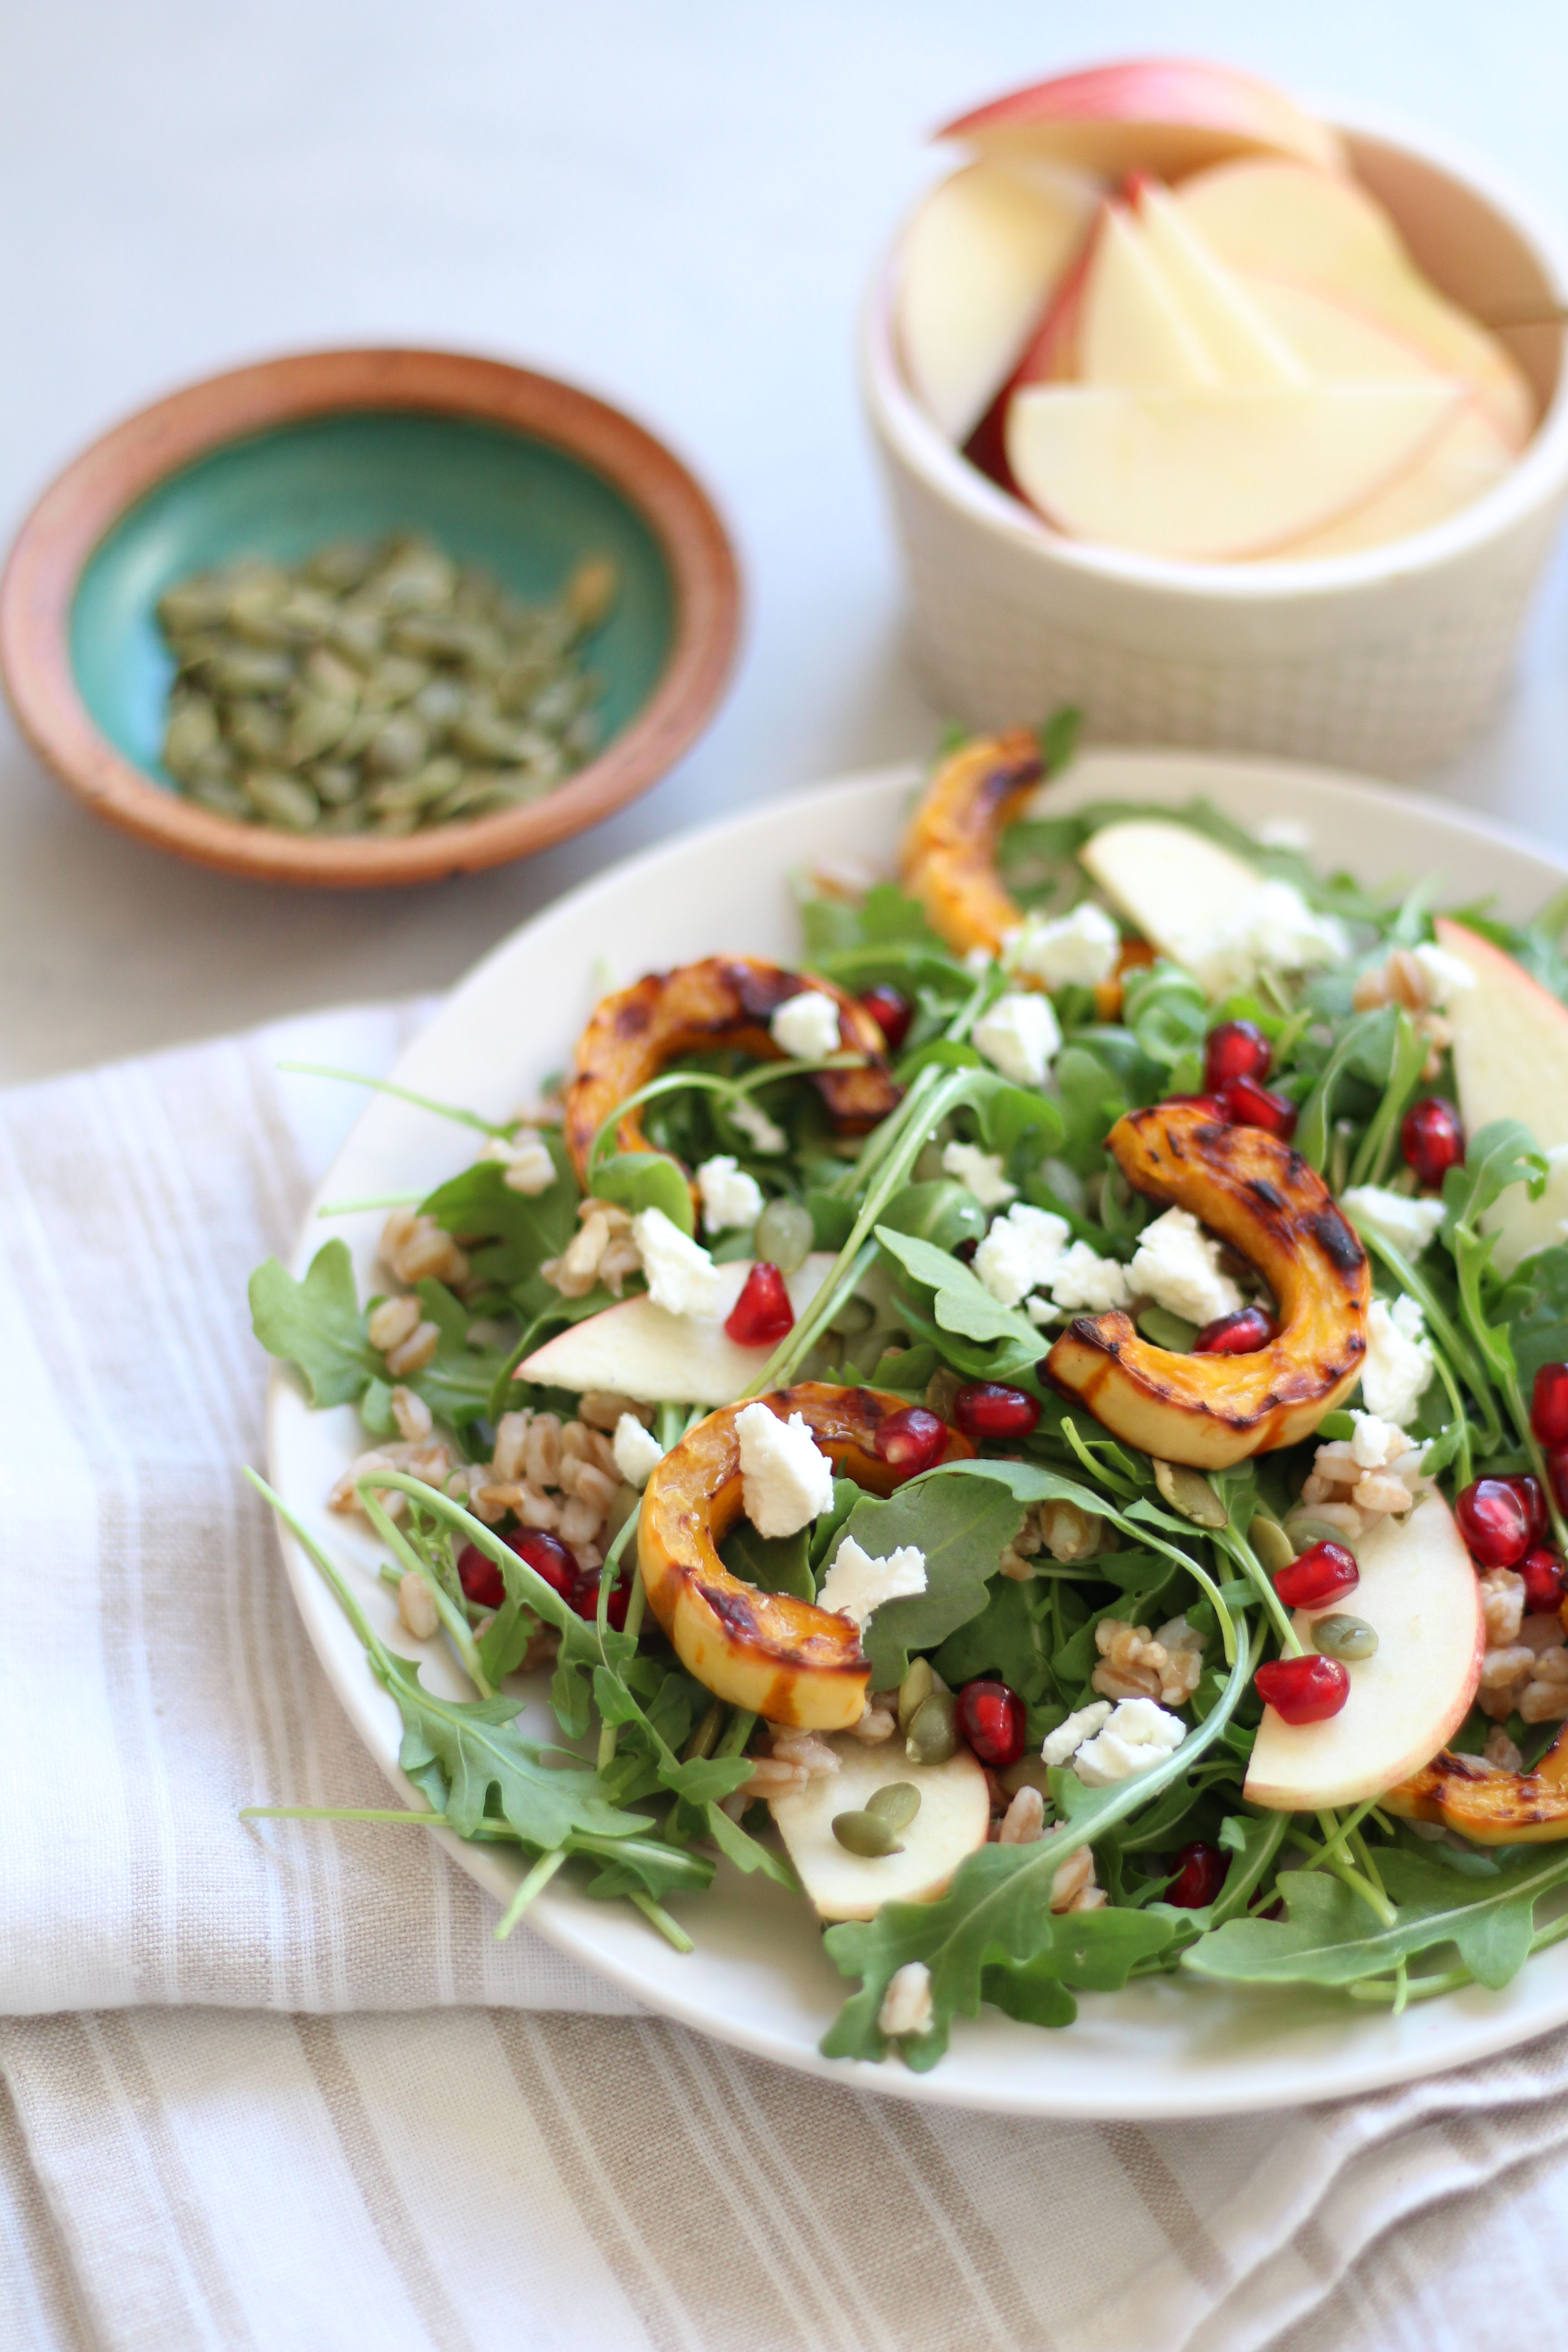 Roasted delicata squash, farro, and arugula salad - the perfect fall and winter salad!